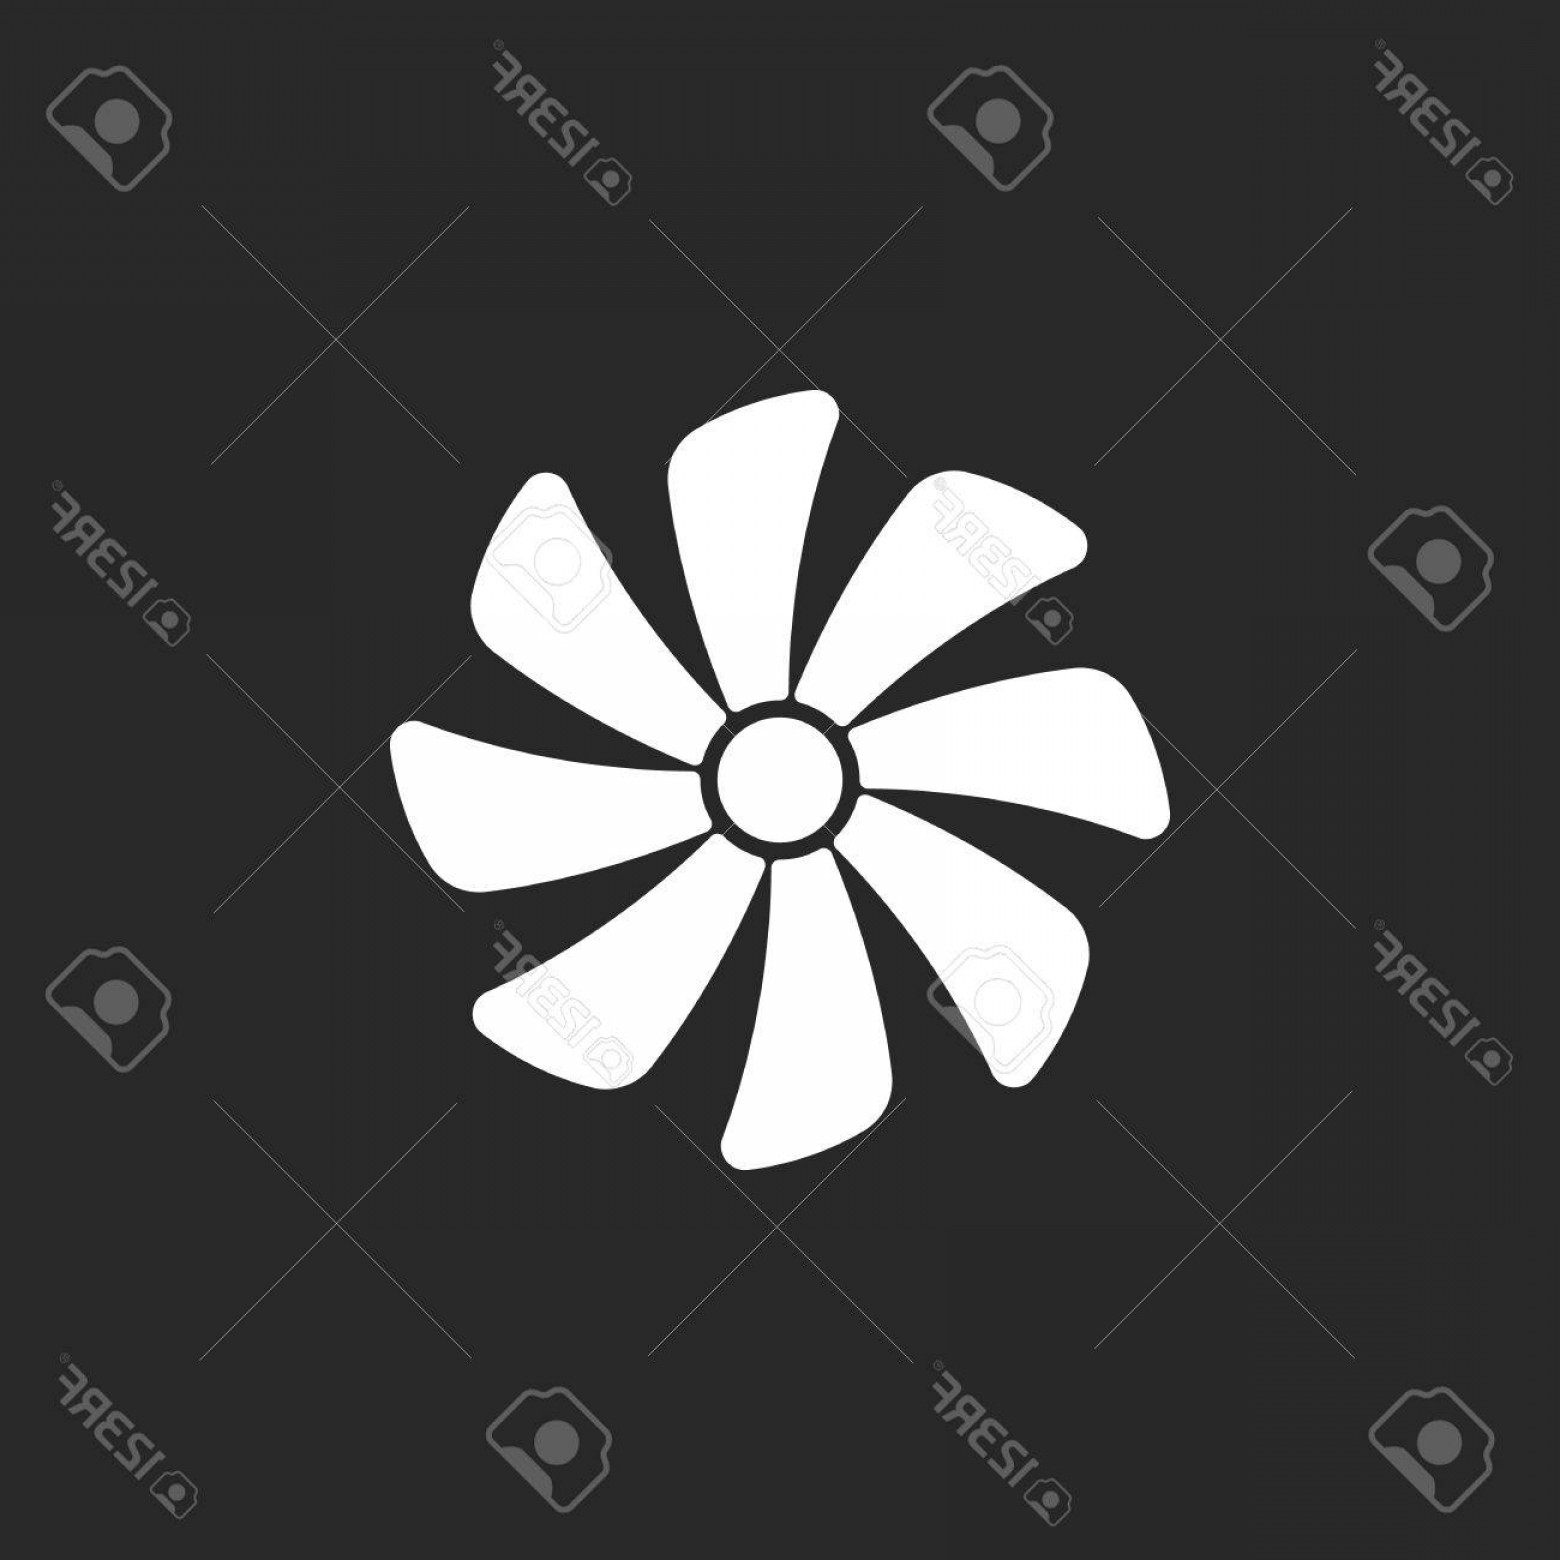 Vector Exhaust Fan: Photostock Vector Exhaust Fan Air Conditioning Sign Simple Icon On Background